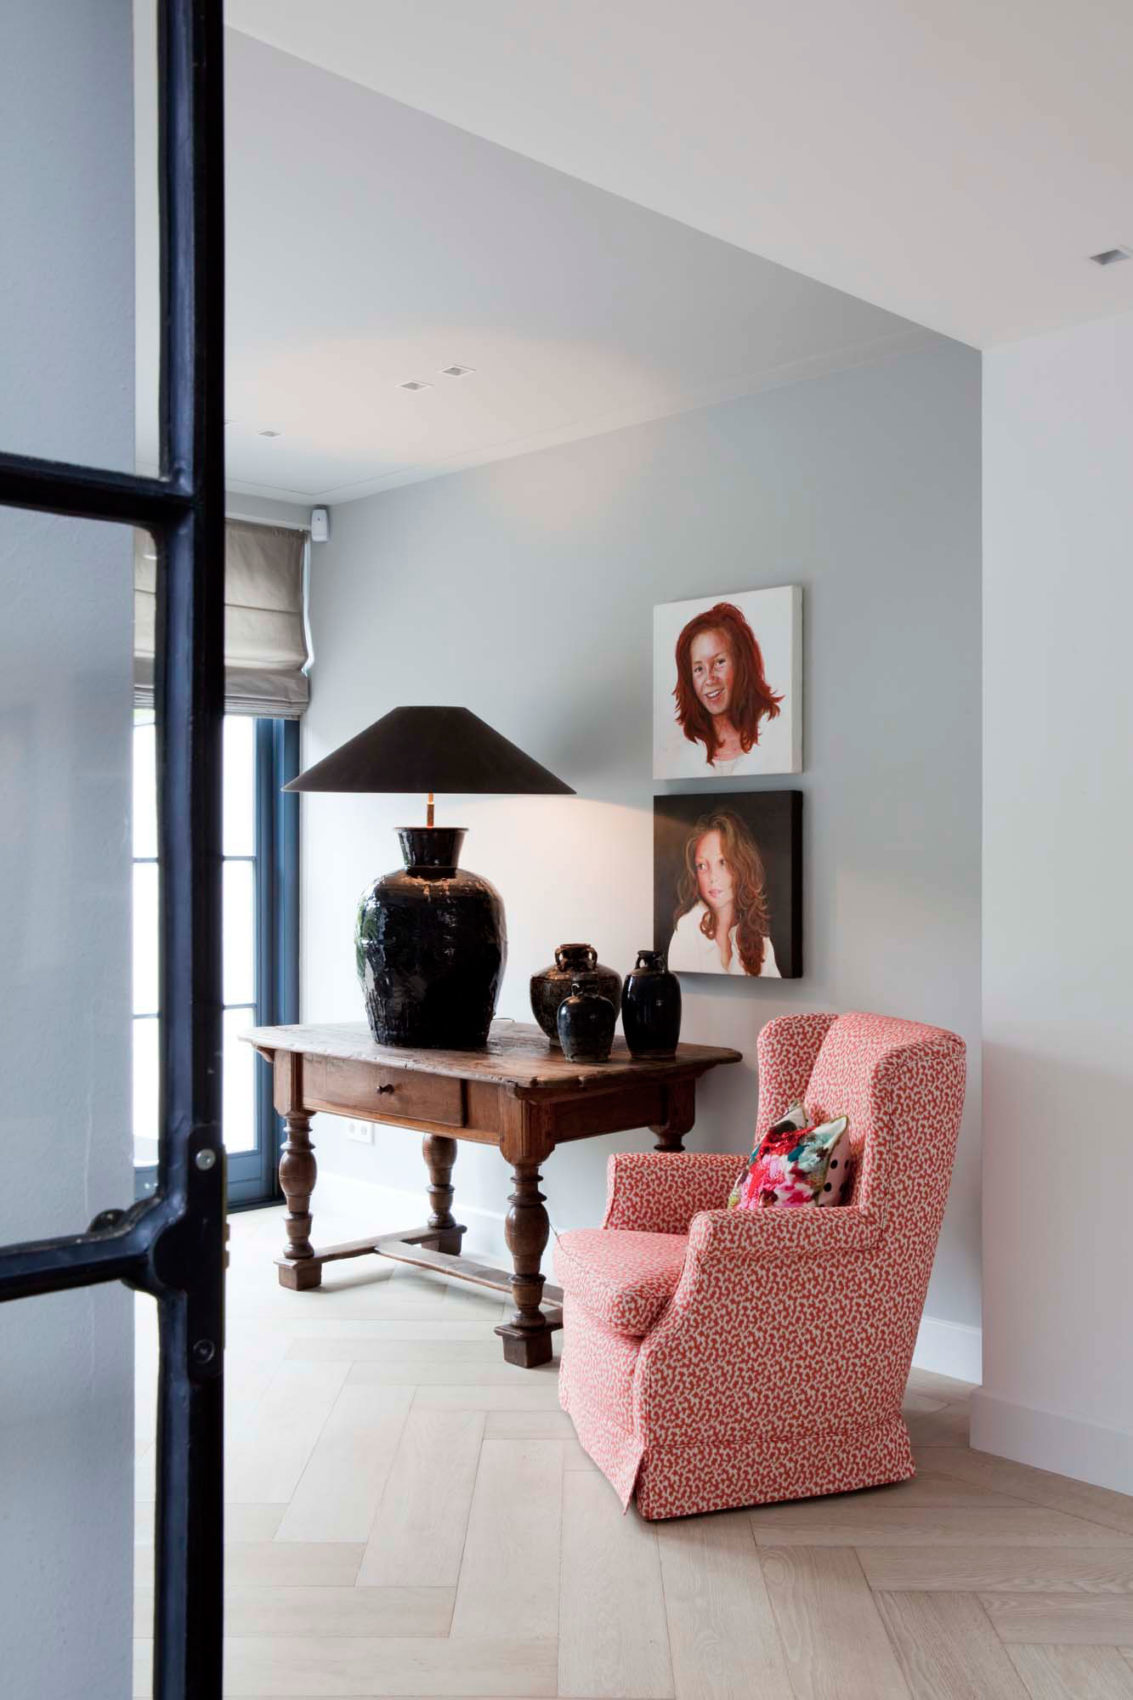 Amsterdam Residential Home by Sies Home Interior Design (7)